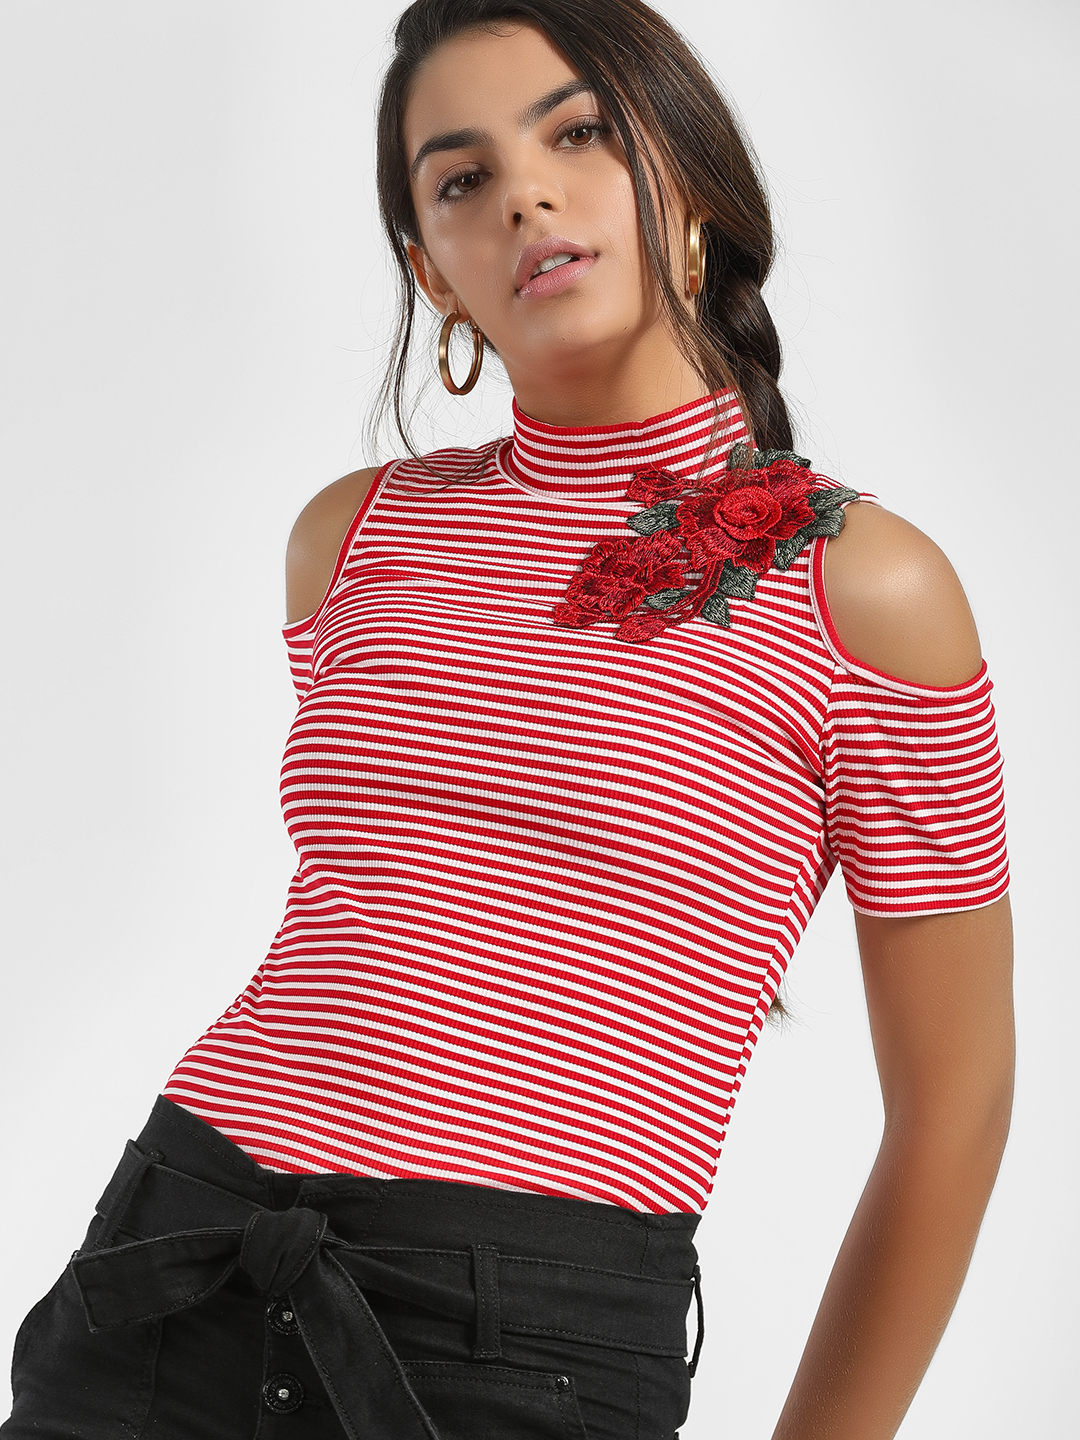 Jealous 21 Red Ribbed Stripe Applique Turtleneck Top 1